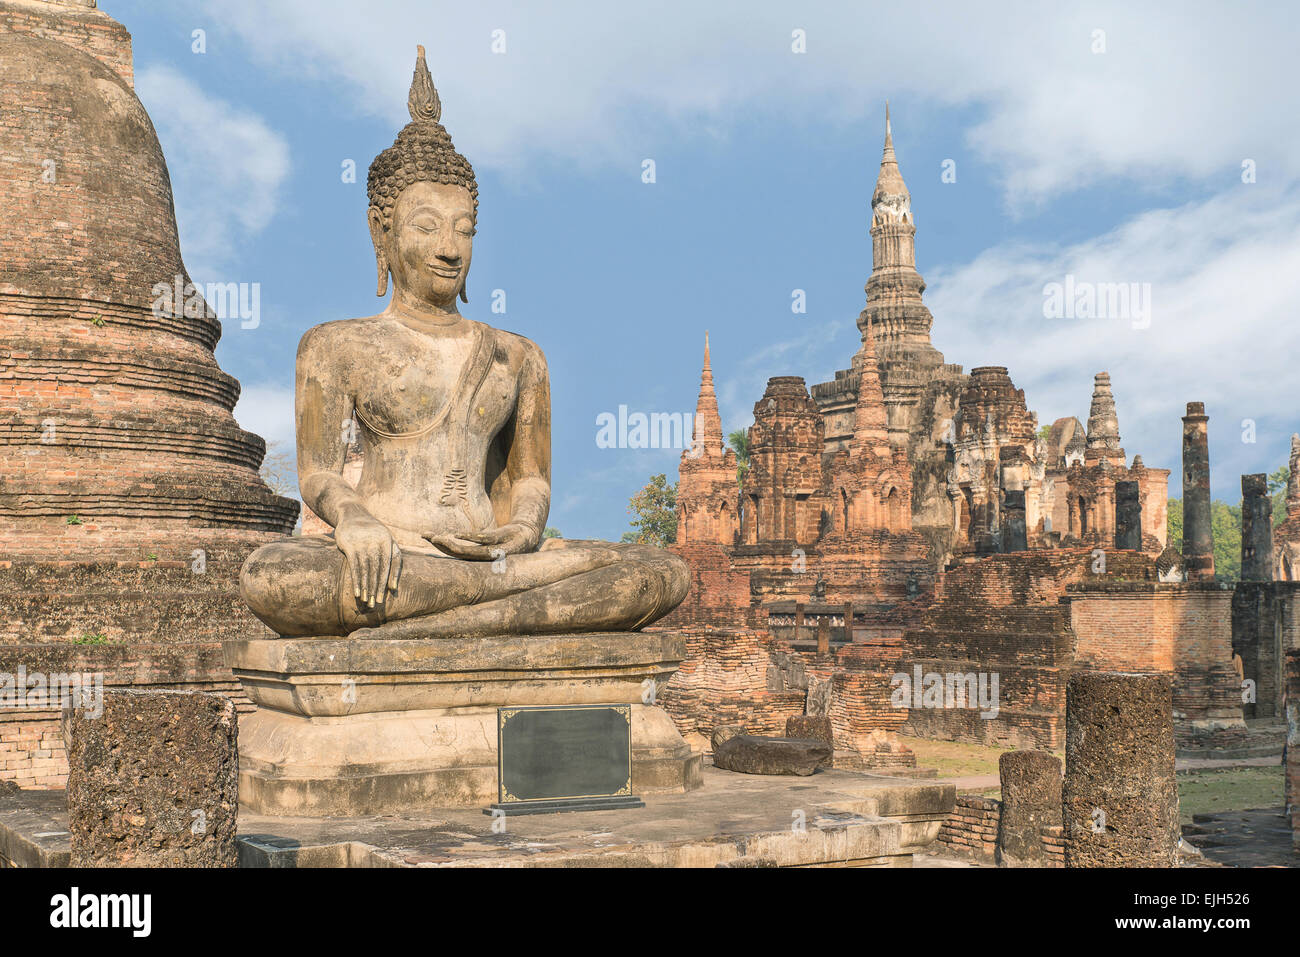 Buddha Statue at Wat Mahathat in Sukhothai Historical Park, Sukhothai,Thailand Stock Photo